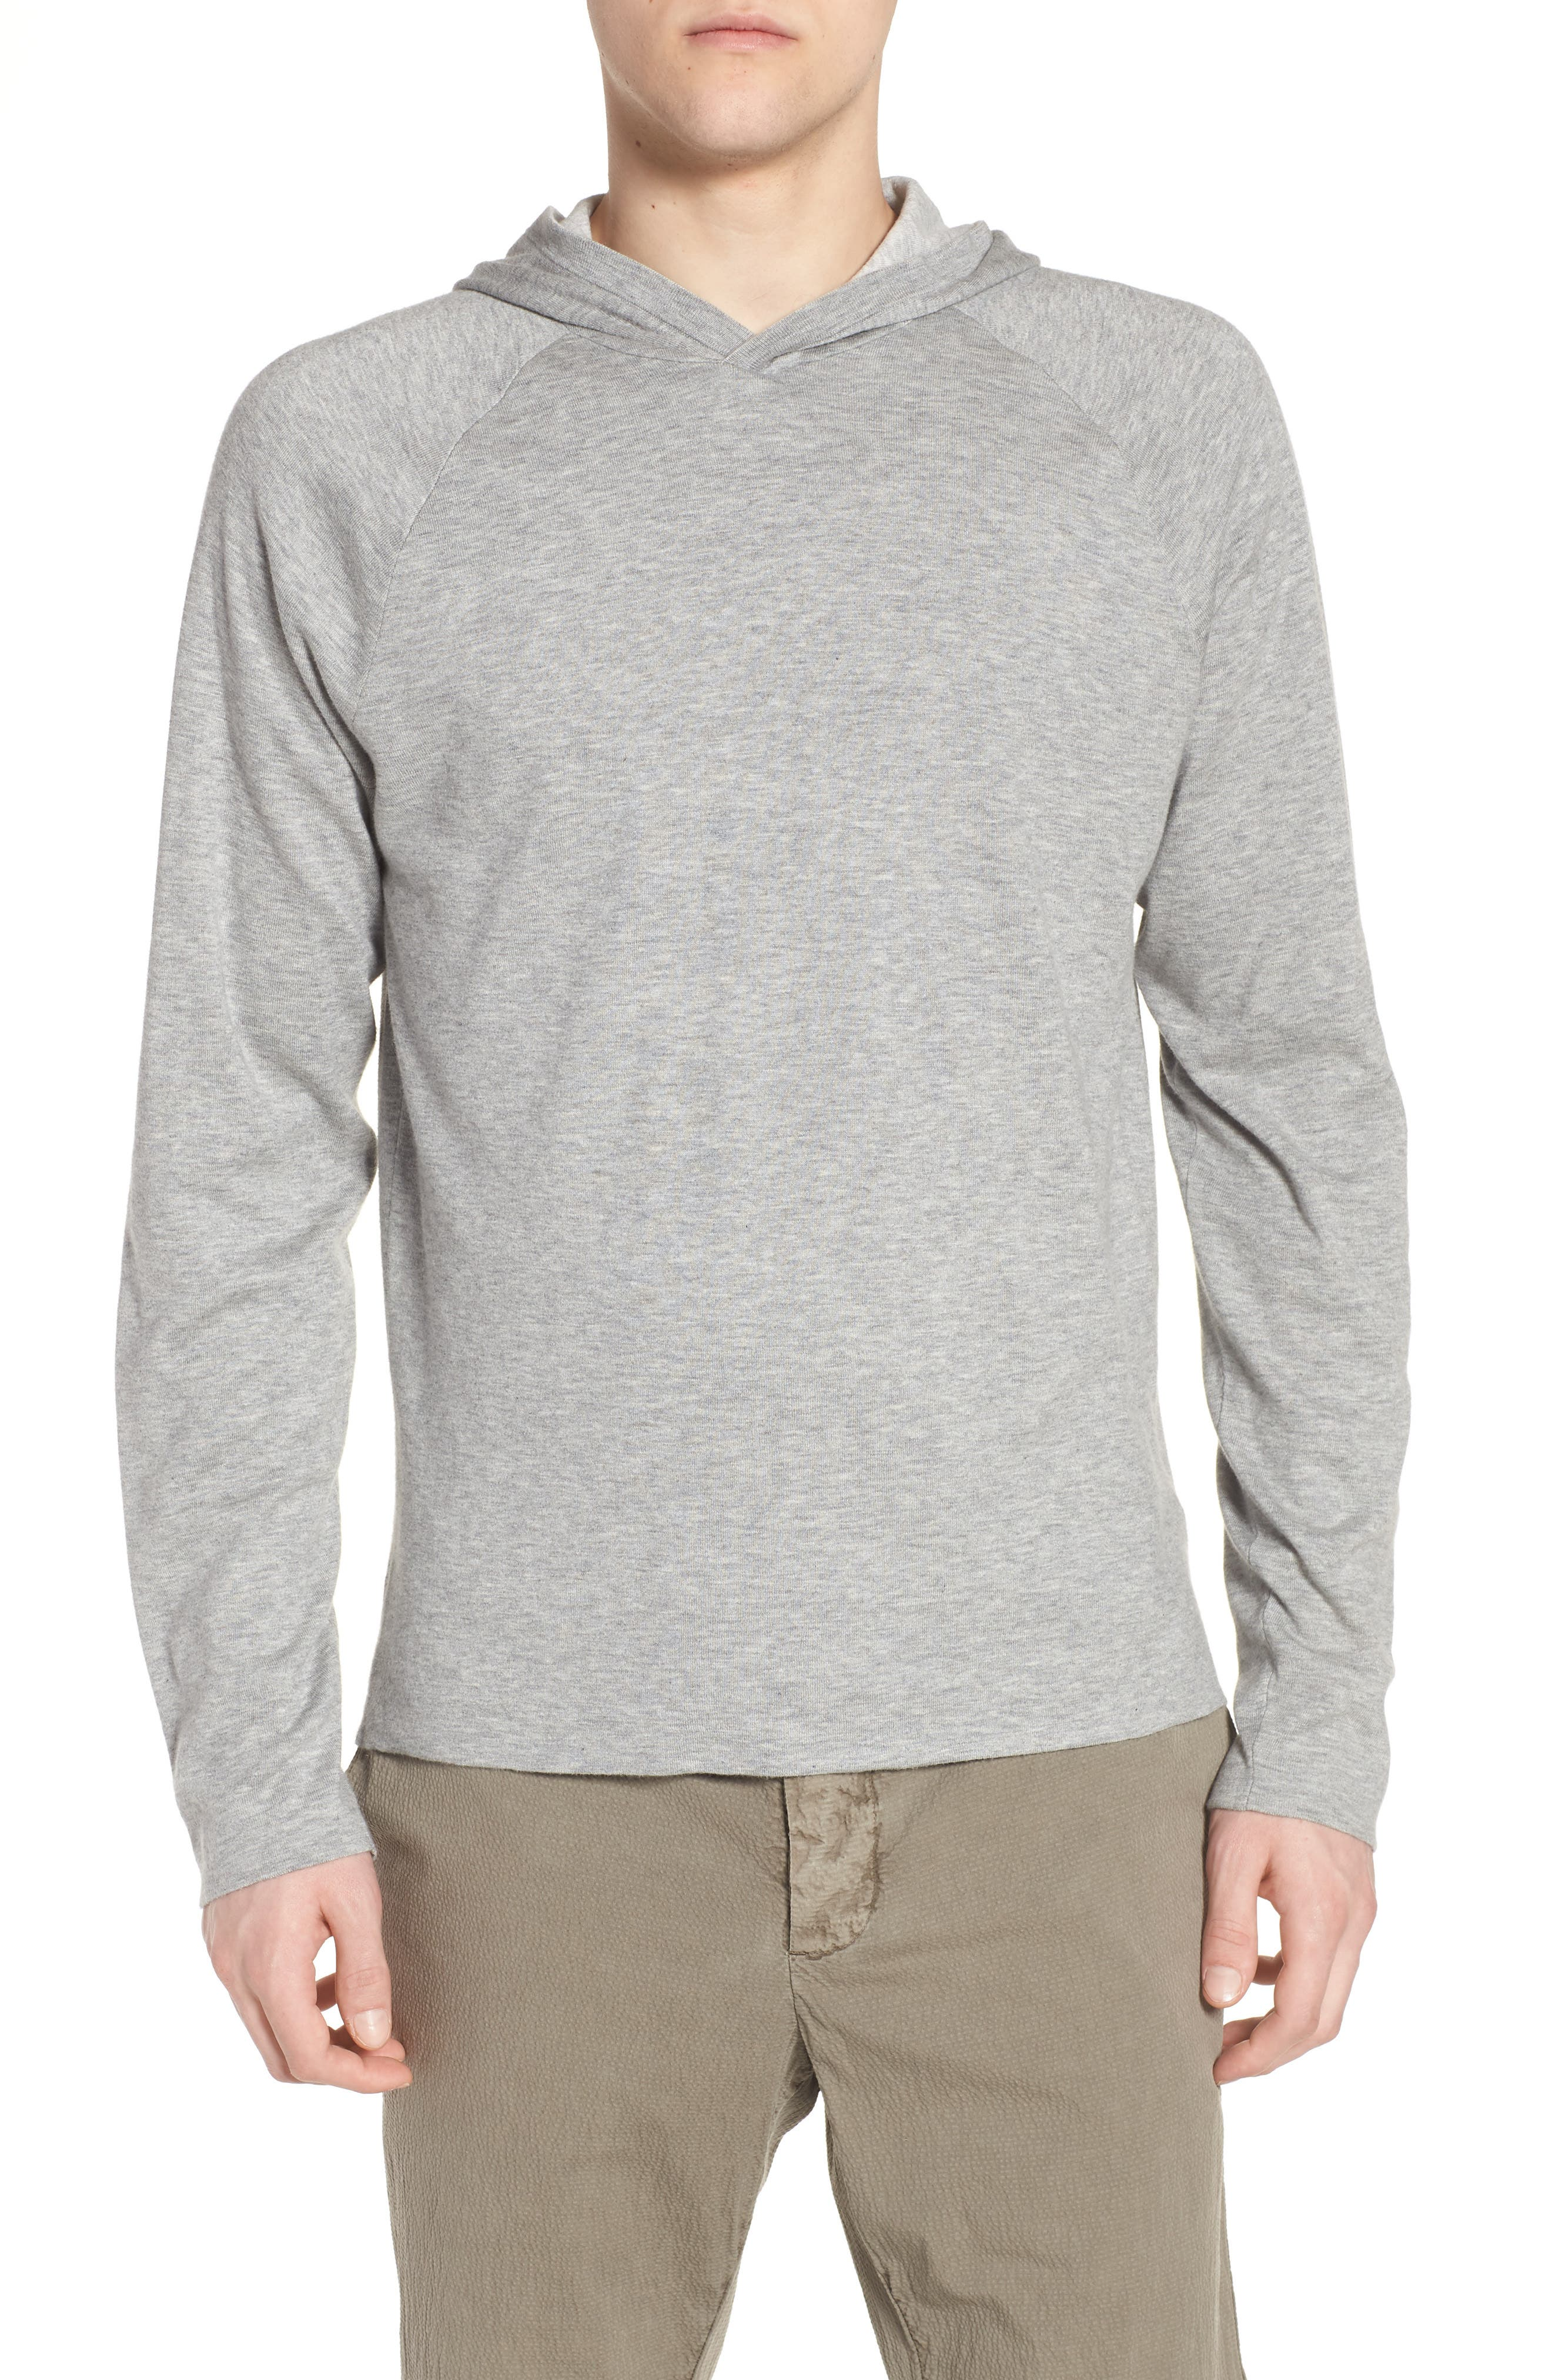 James Perse Reversible Hooded Sweater